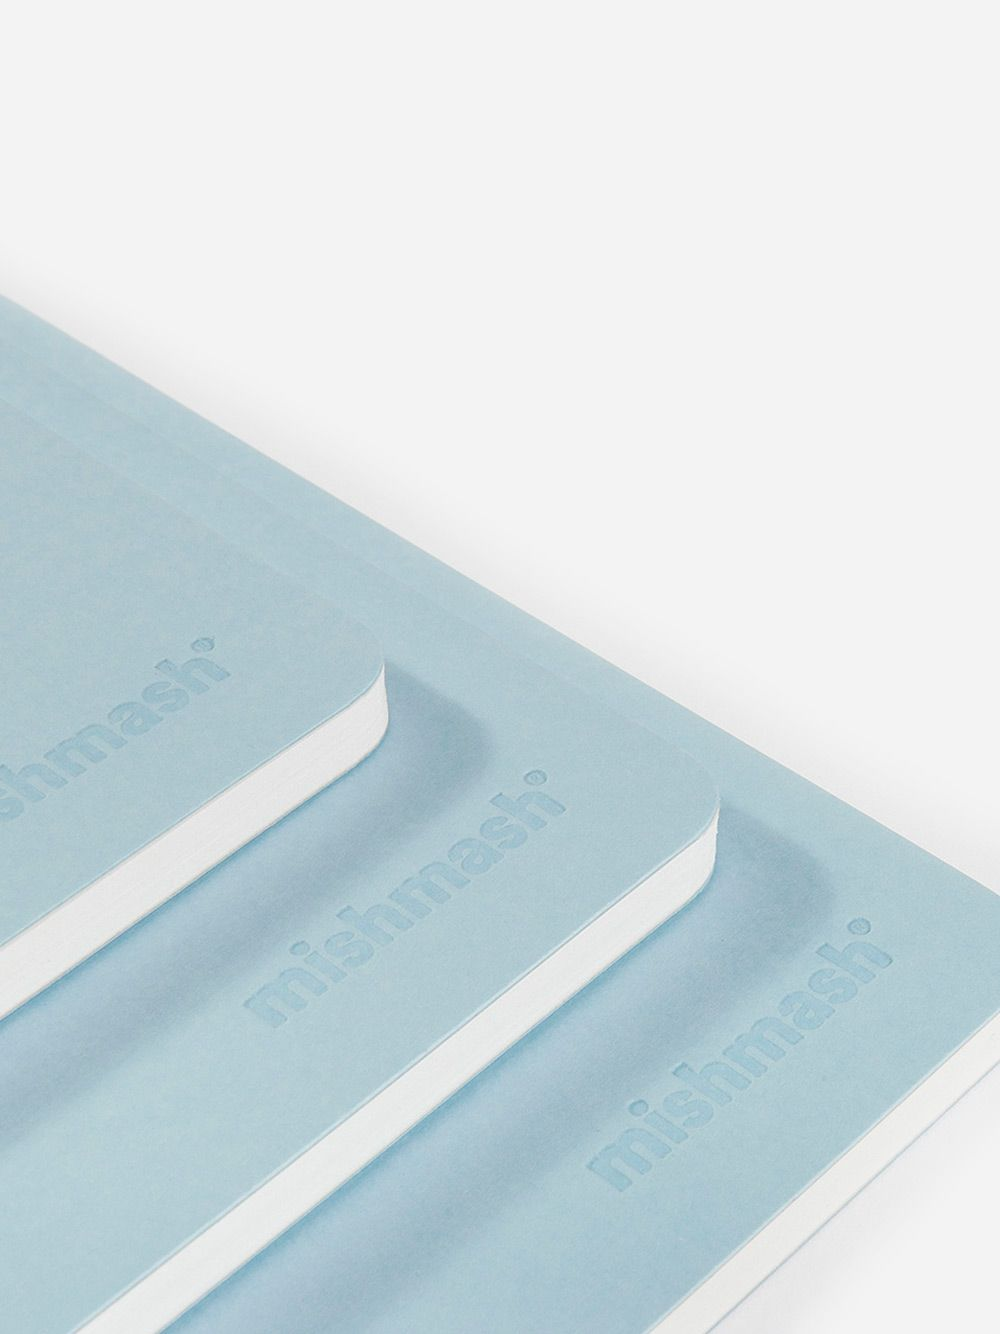 Naked Sky Blue Notebook | Mishmash